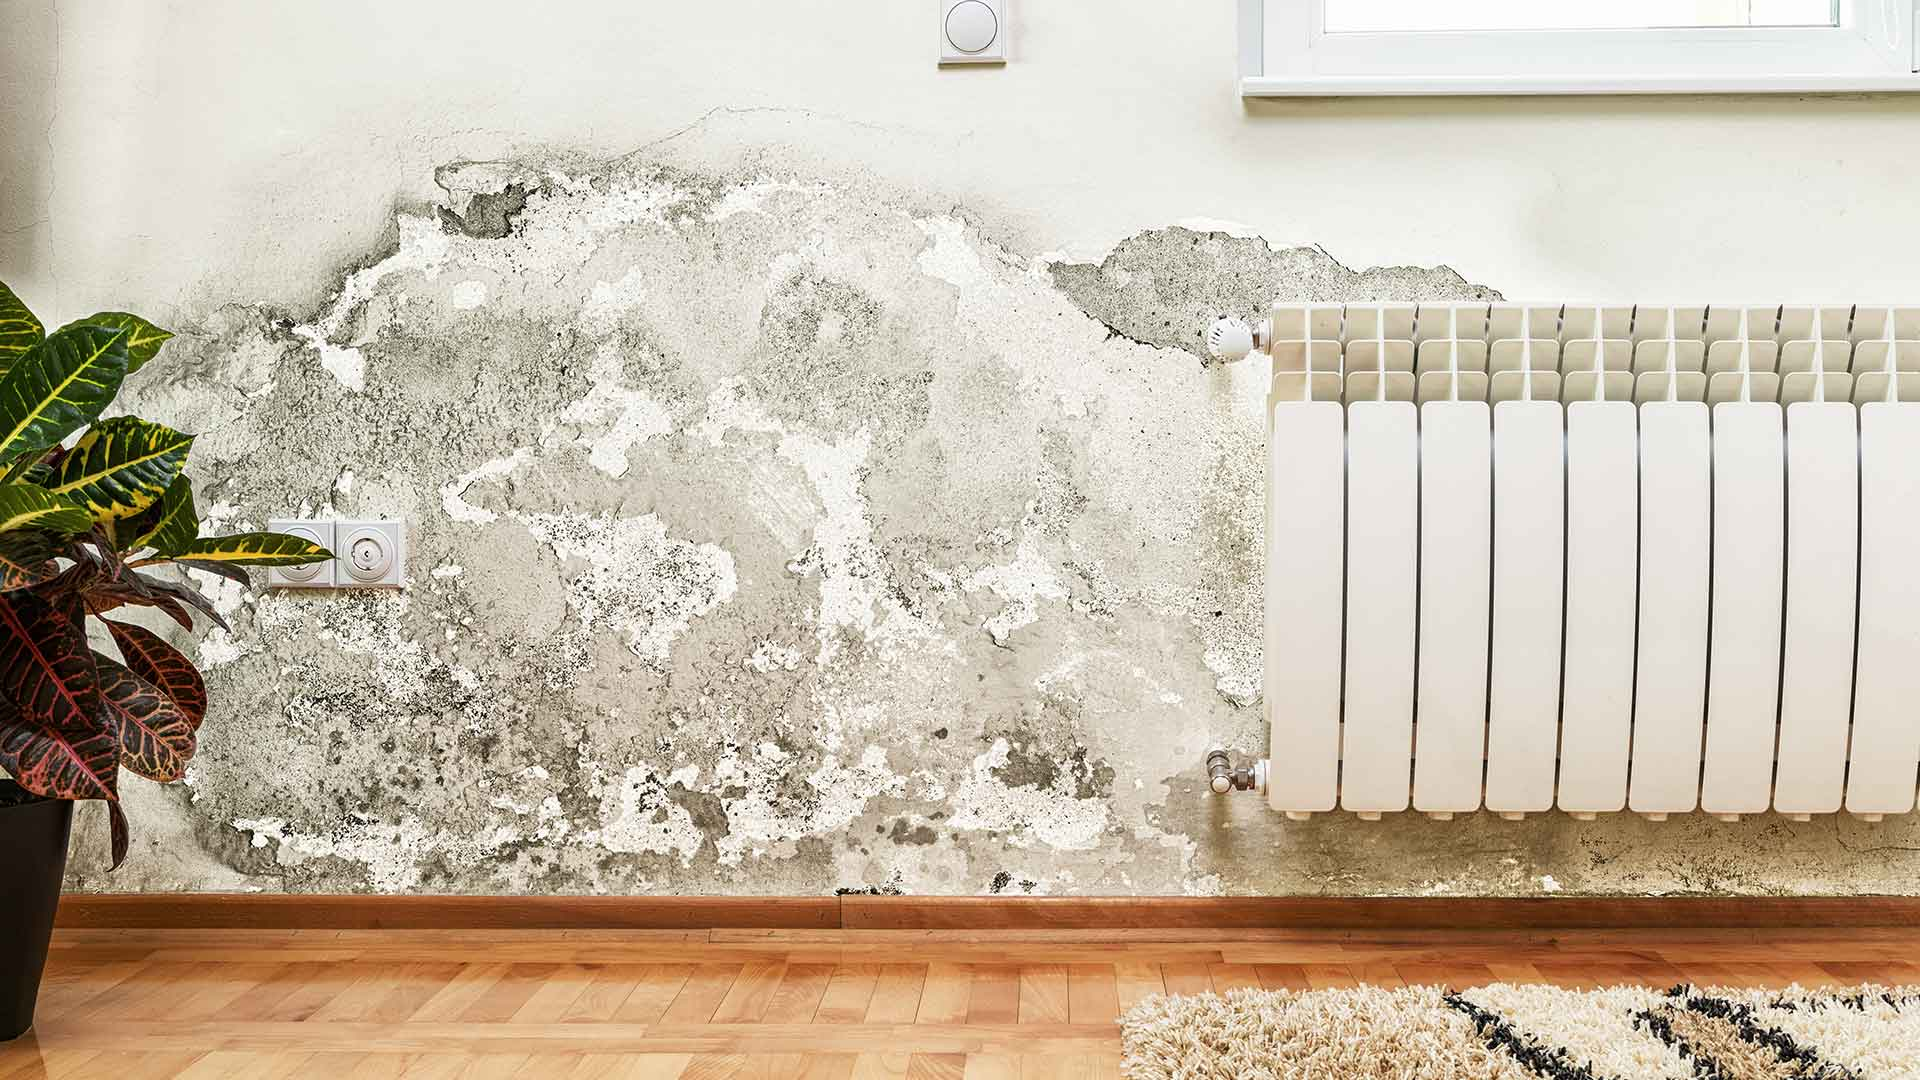 Reconstruction Mold Remediation Mold Removal and Mold Testing